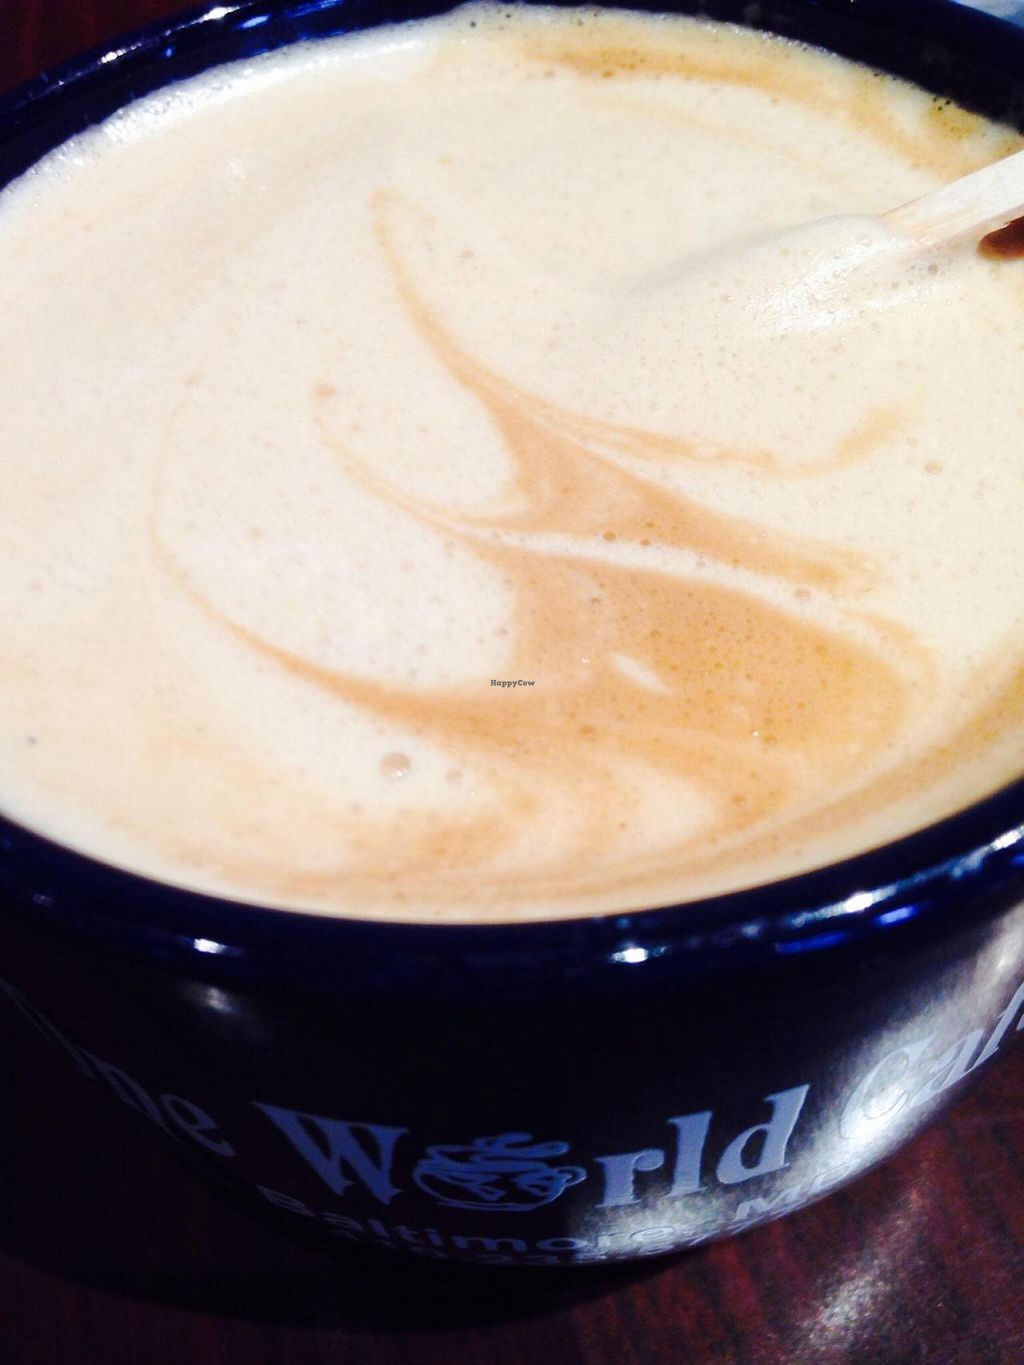 "Photo of One World Cafe  by <a href=""/members/profile/cookiem"">cookiem</a> <br/>Almond milk latte!! <br/> September 6, 2014  - <a href='/contact/abuse/image/3764/79215'>Report</a>"